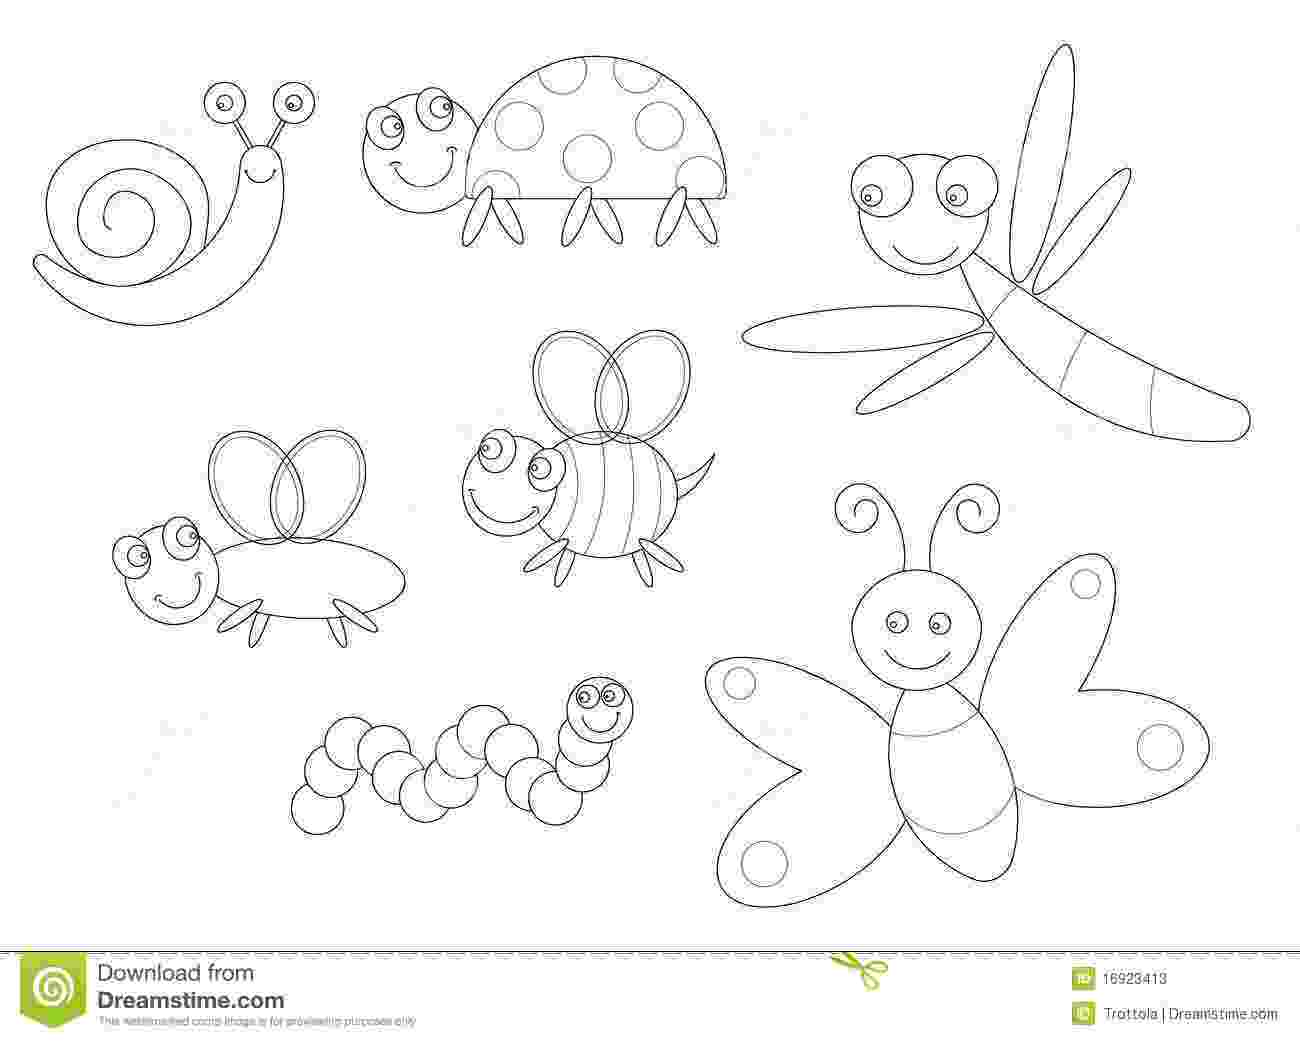 pictures of insects to color bugs coloring page stock illustration illustration of to color pictures of insects